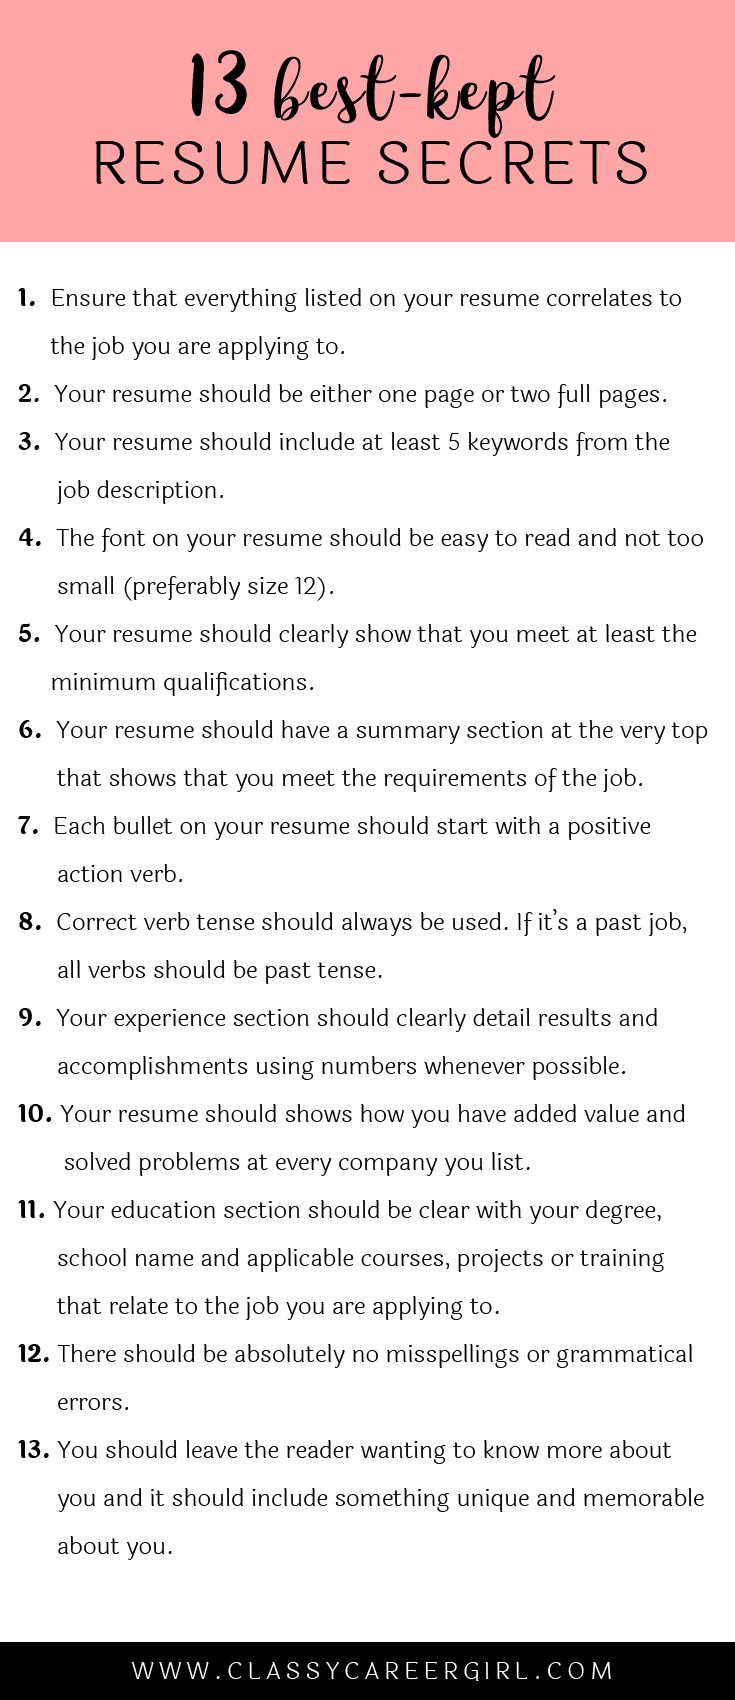 Picnictoimpeachus  Marvellous  Ideas About Resume On Pinterest  Cv Format Resume Cv And  With Extraordinary Some Hiring Managers Will Toss Your Resume Out If You Dont Know These  With Delectable Google Drive Resume Templates Also Resume For Law School In Addition Teaching Resume Sample And Sample Bartender Resume As Well As How Long Can A Resume Be Additionally High School Resume Format From Pinterestcom With Picnictoimpeachus  Extraordinary  Ideas About Resume On Pinterest  Cv Format Resume Cv And  With Delectable Some Hiring Managers Will Toss Your Resume Out If You Dont Know These  And Marvellous Google Drive Resume Templates Also Resume For Law School In Addition Teaching Resume Sample From Pinterestcom